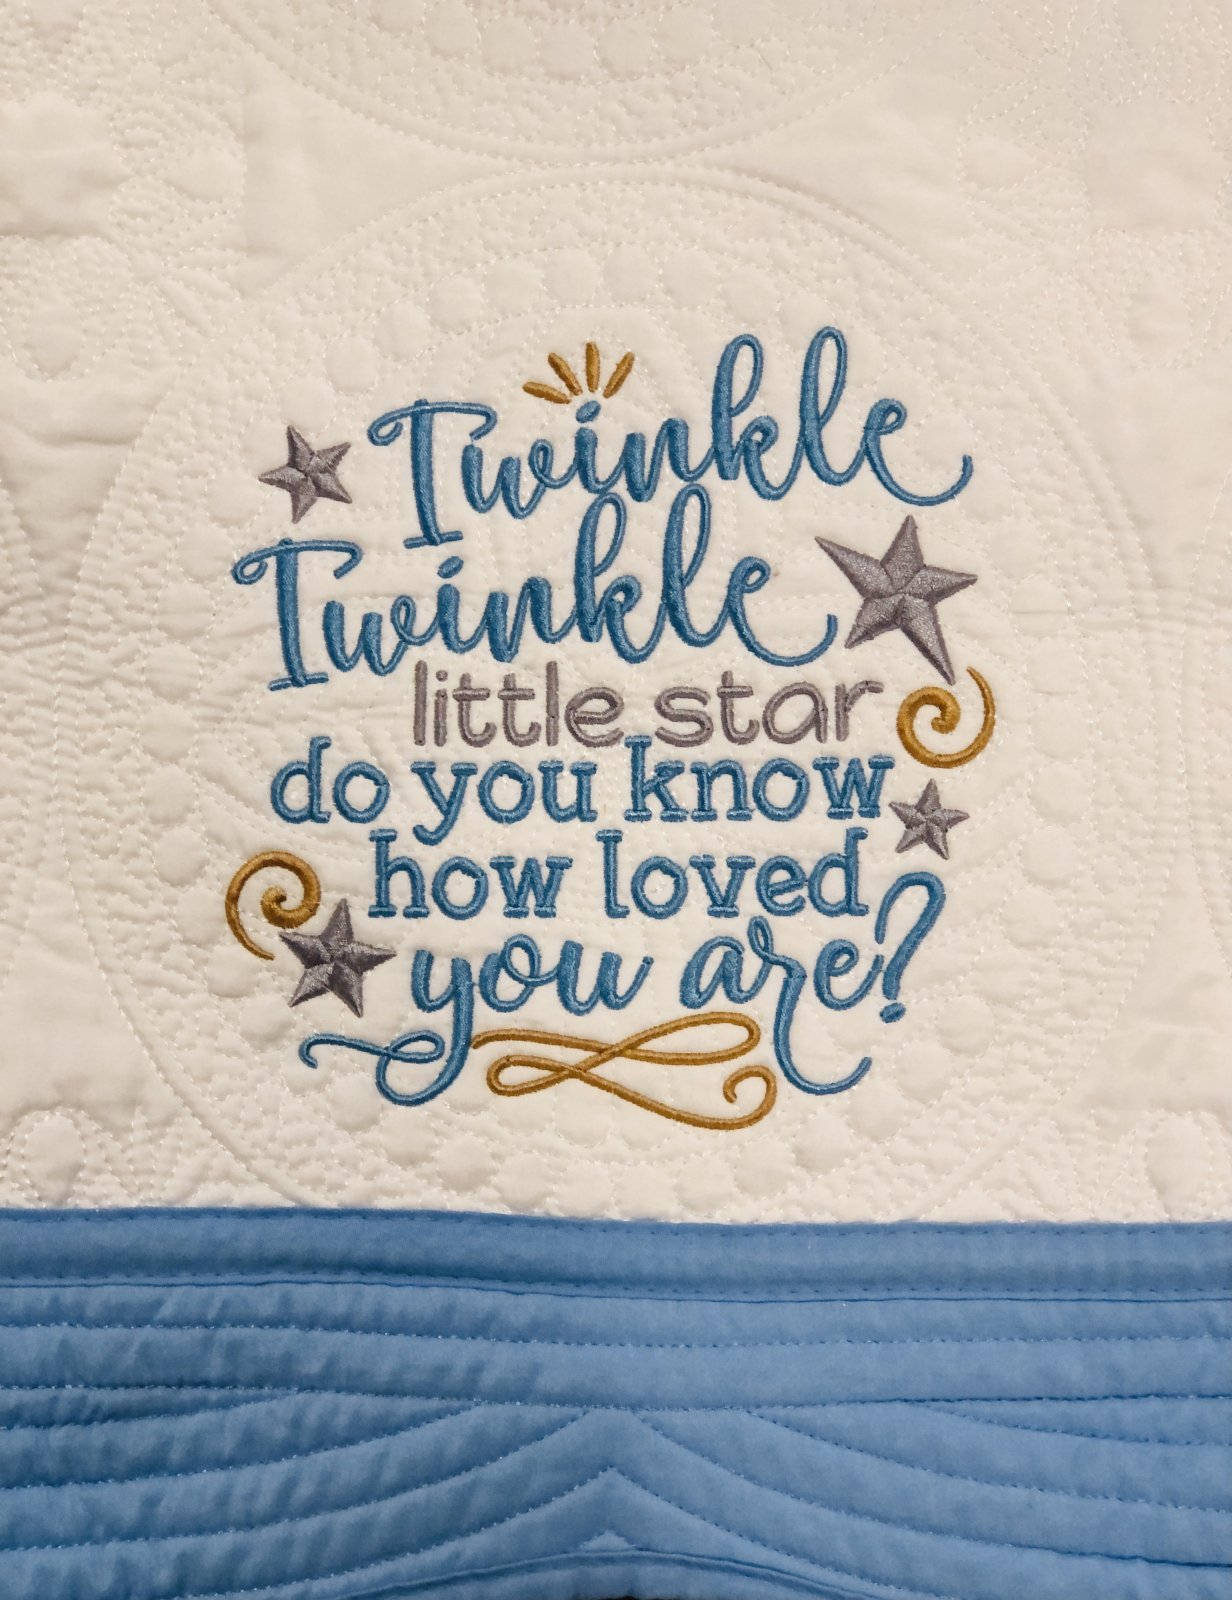 Heirloom Baby Quilts Twinkle Twinkle Little Star Do you Know How Loved your are?